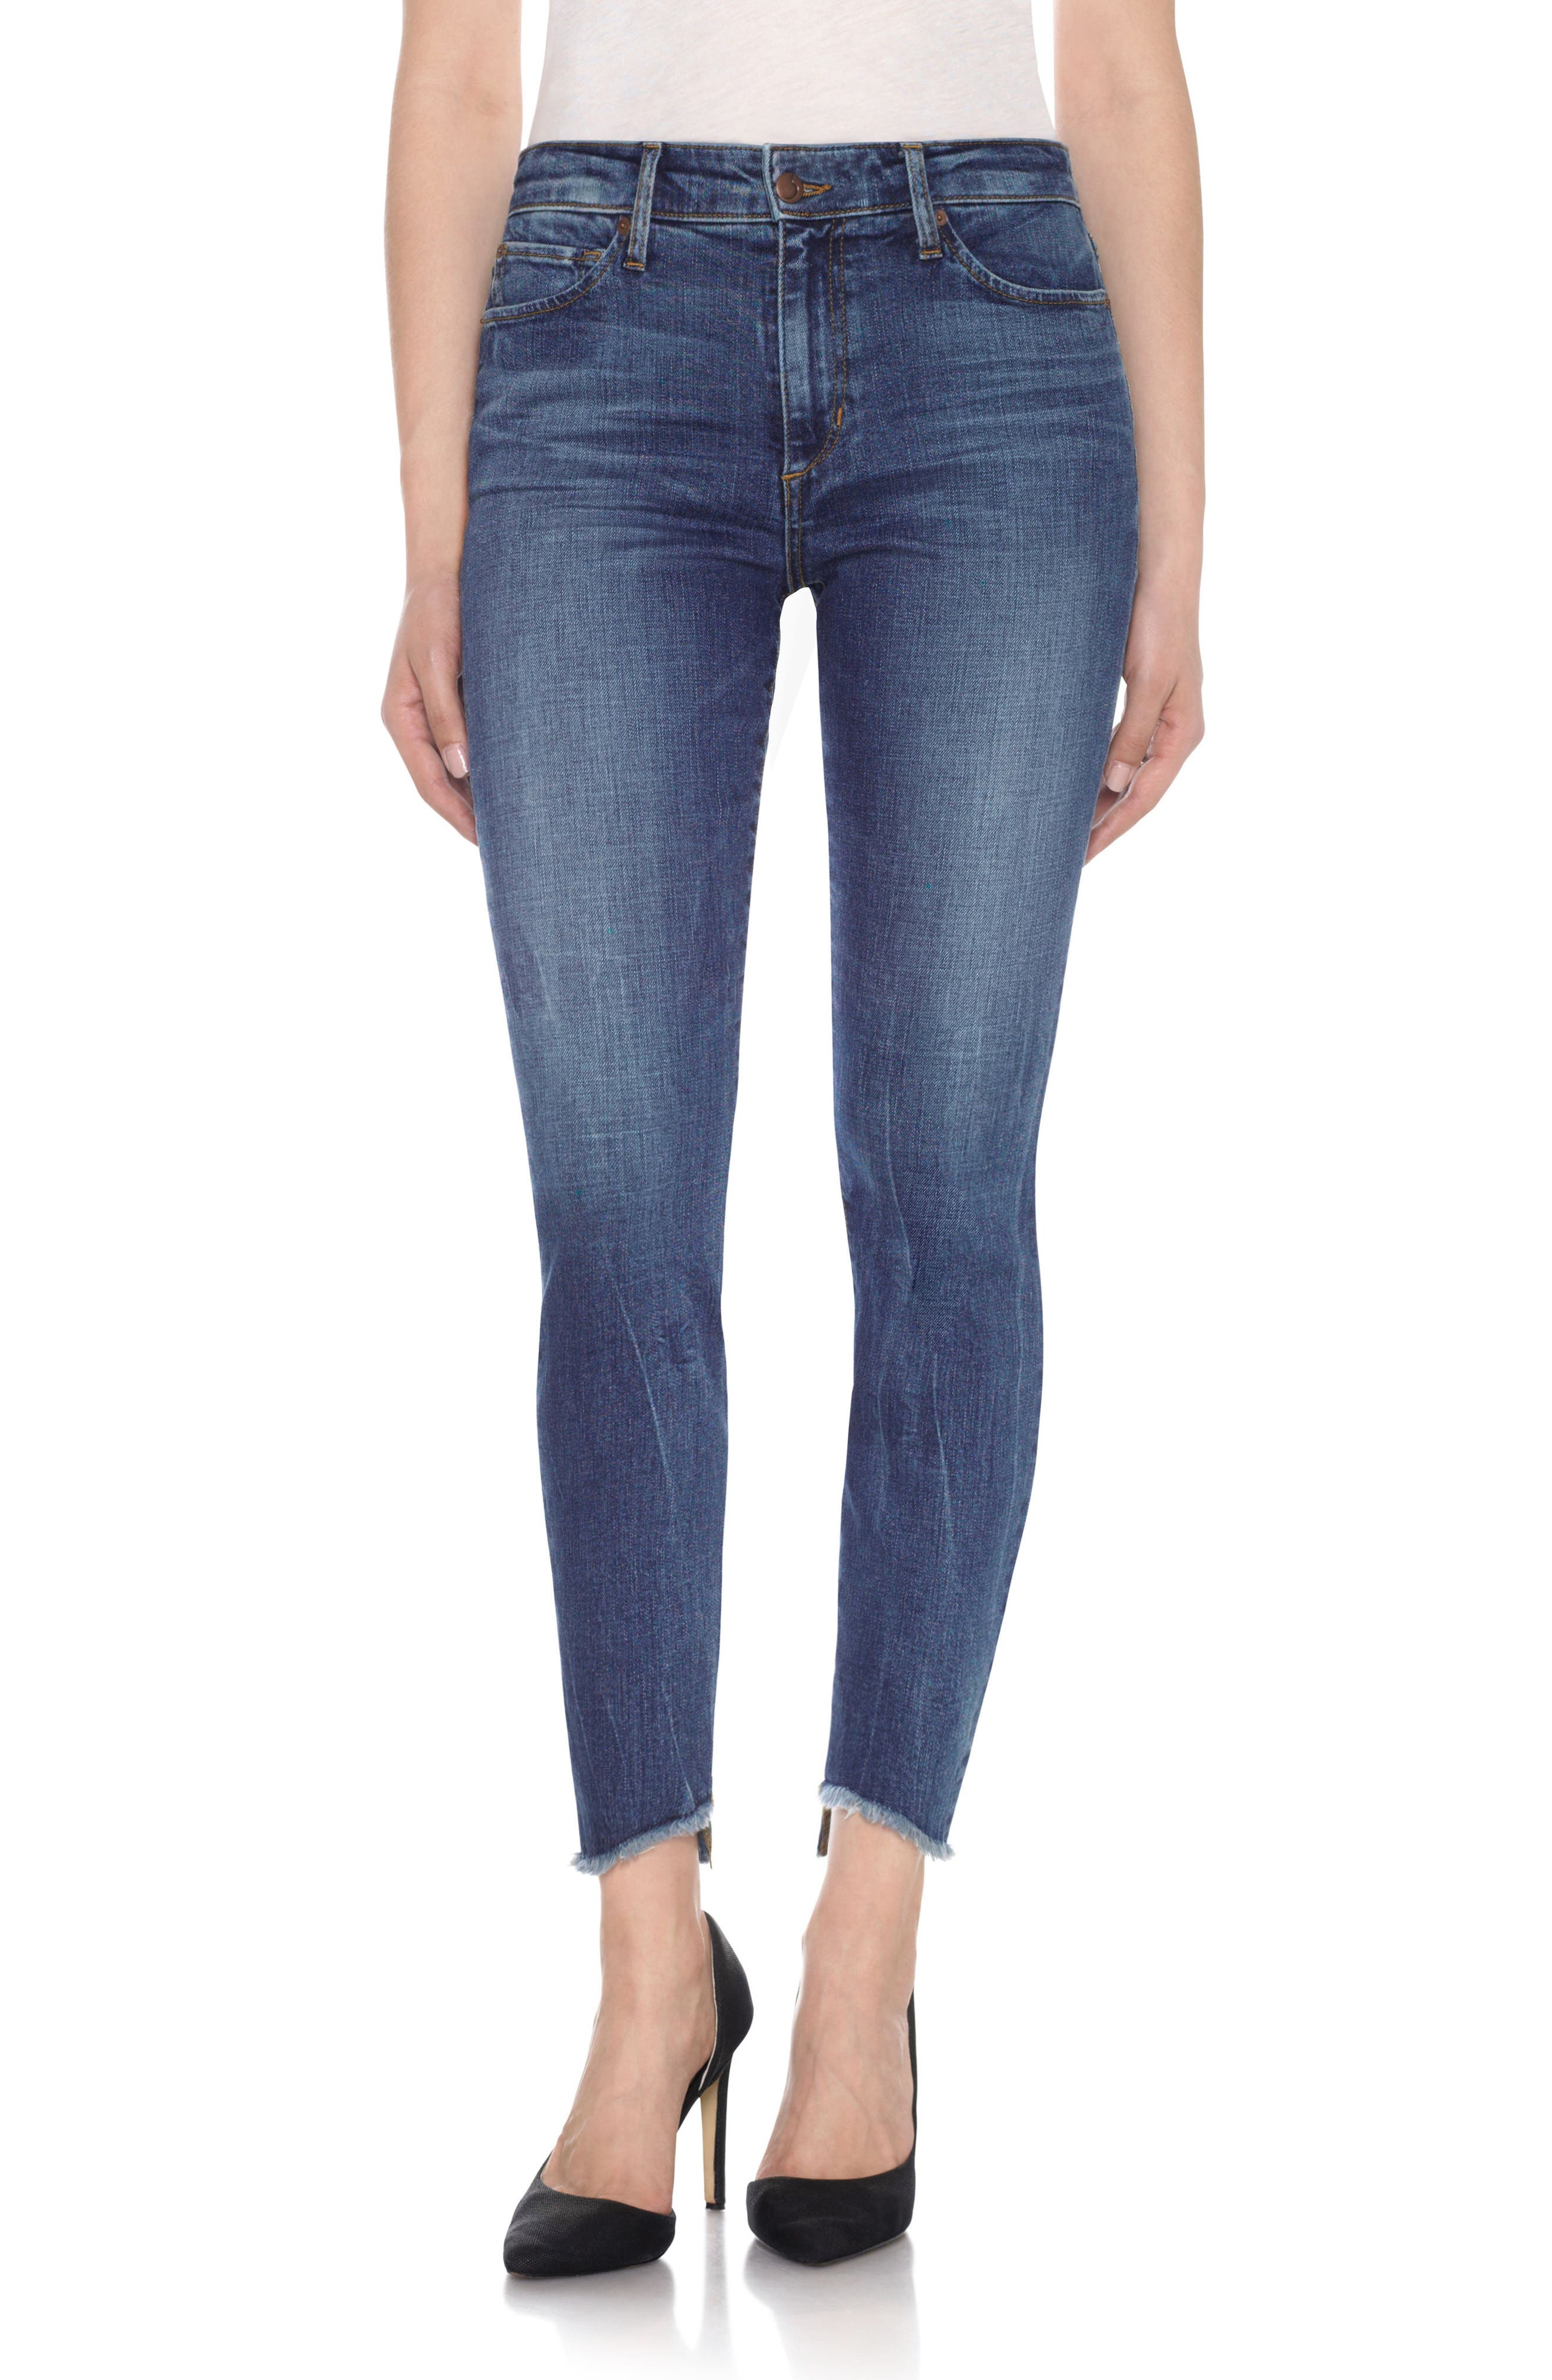 Charlie - Blondie High Rise Ankle Skinny Jeans,                         Main,                         color, Kody